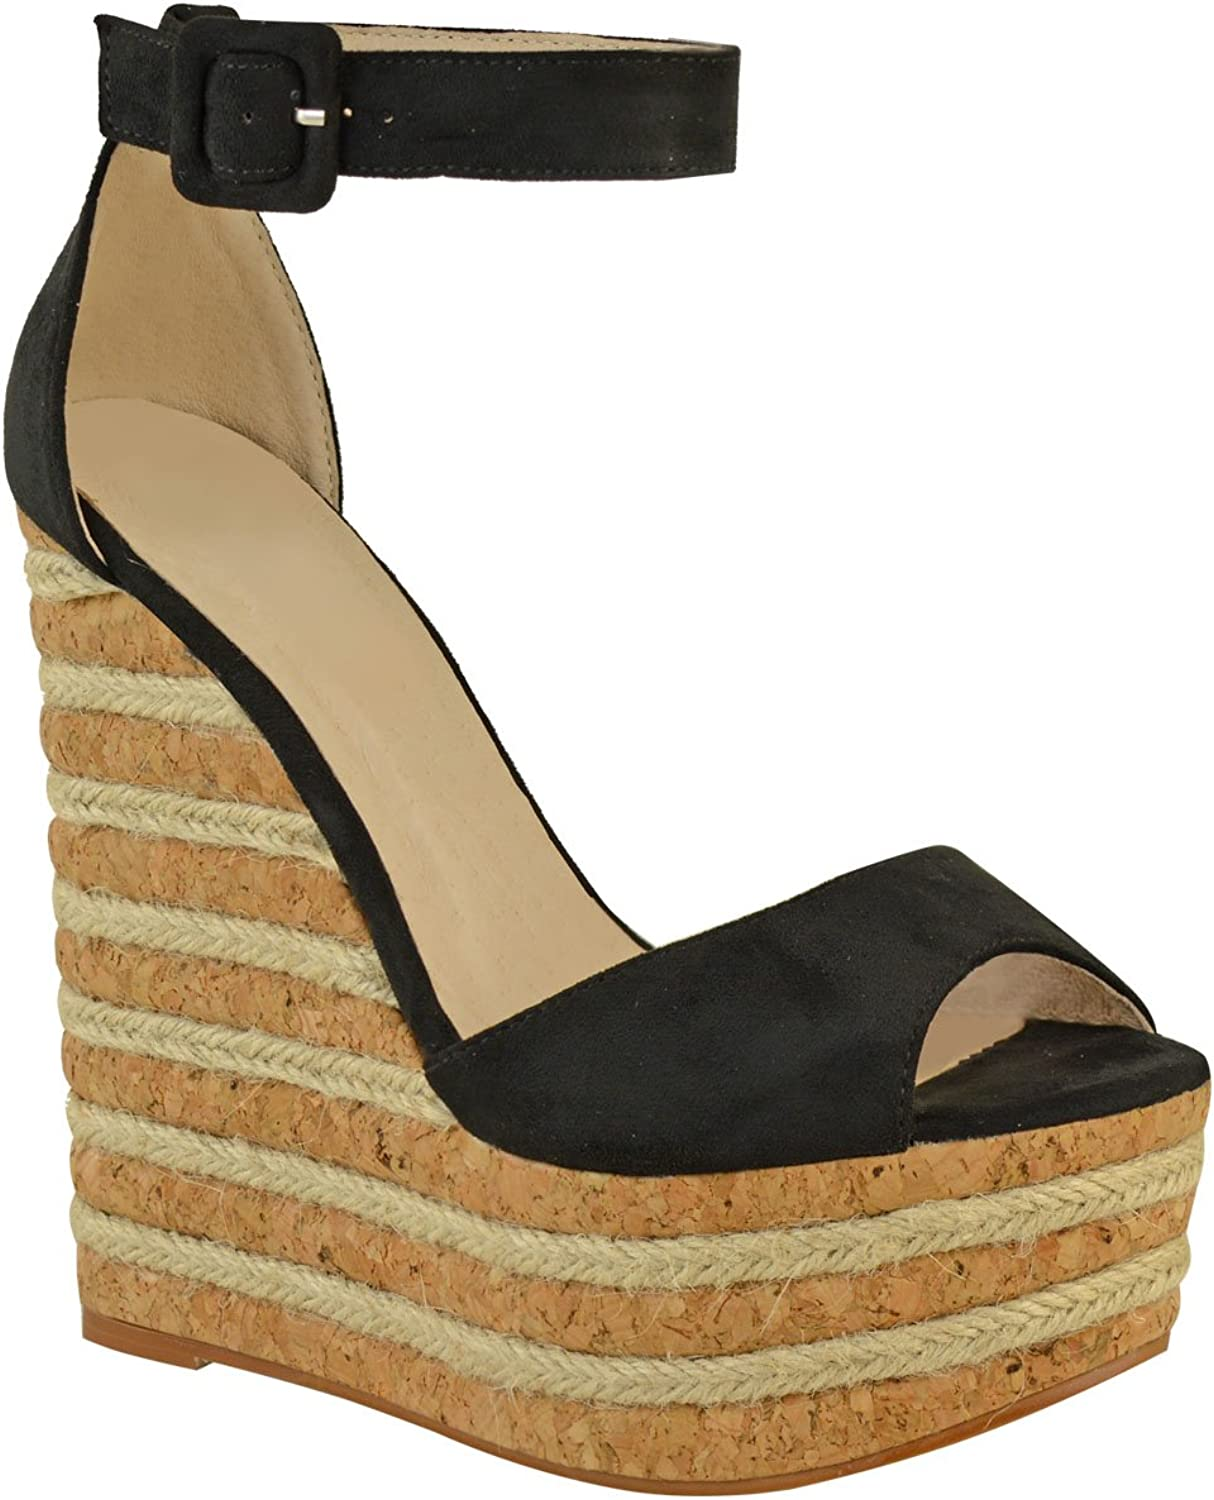 Fashion Thirsty Womens High Heel Wedge Summer Sandals Espadrilles Party Size 5